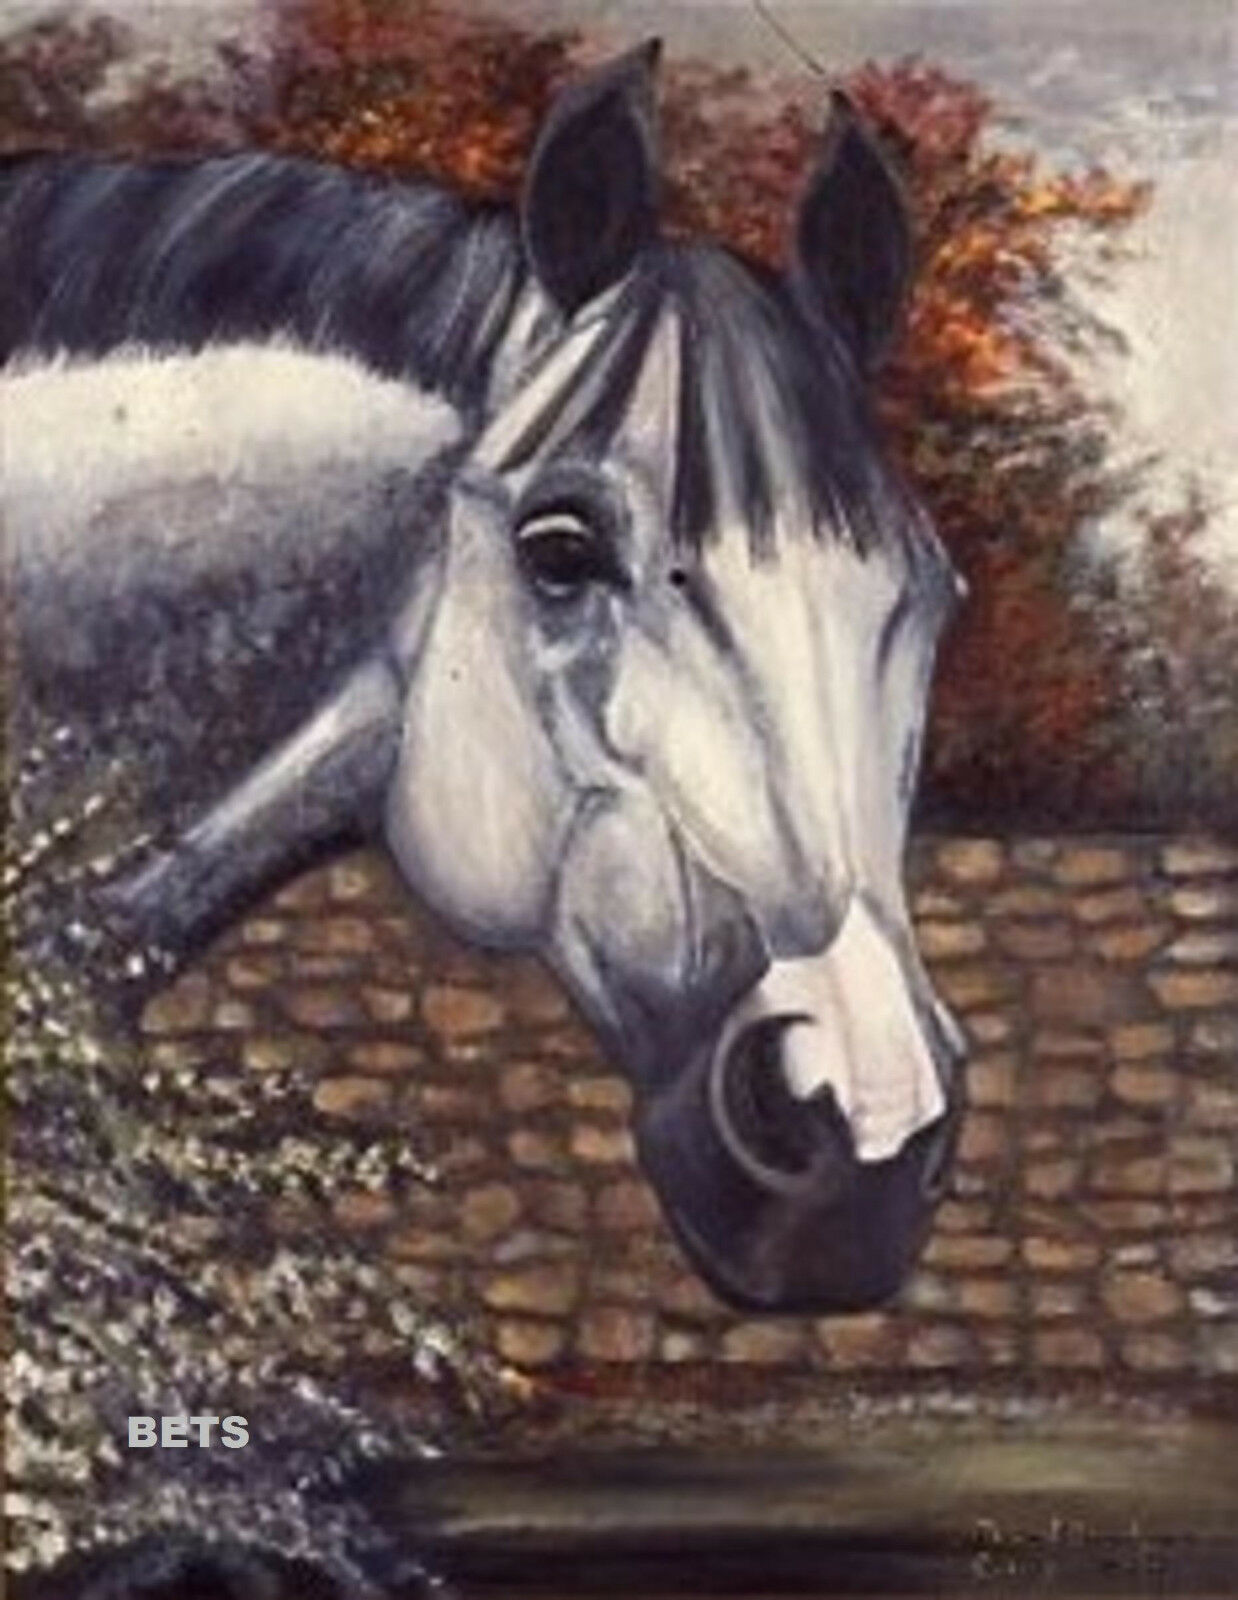 HORSE PRINT Giclee GREY Horse AMERICA  by artist BETS 4 COLORS print size 12 X 16  order now enjoy big discount